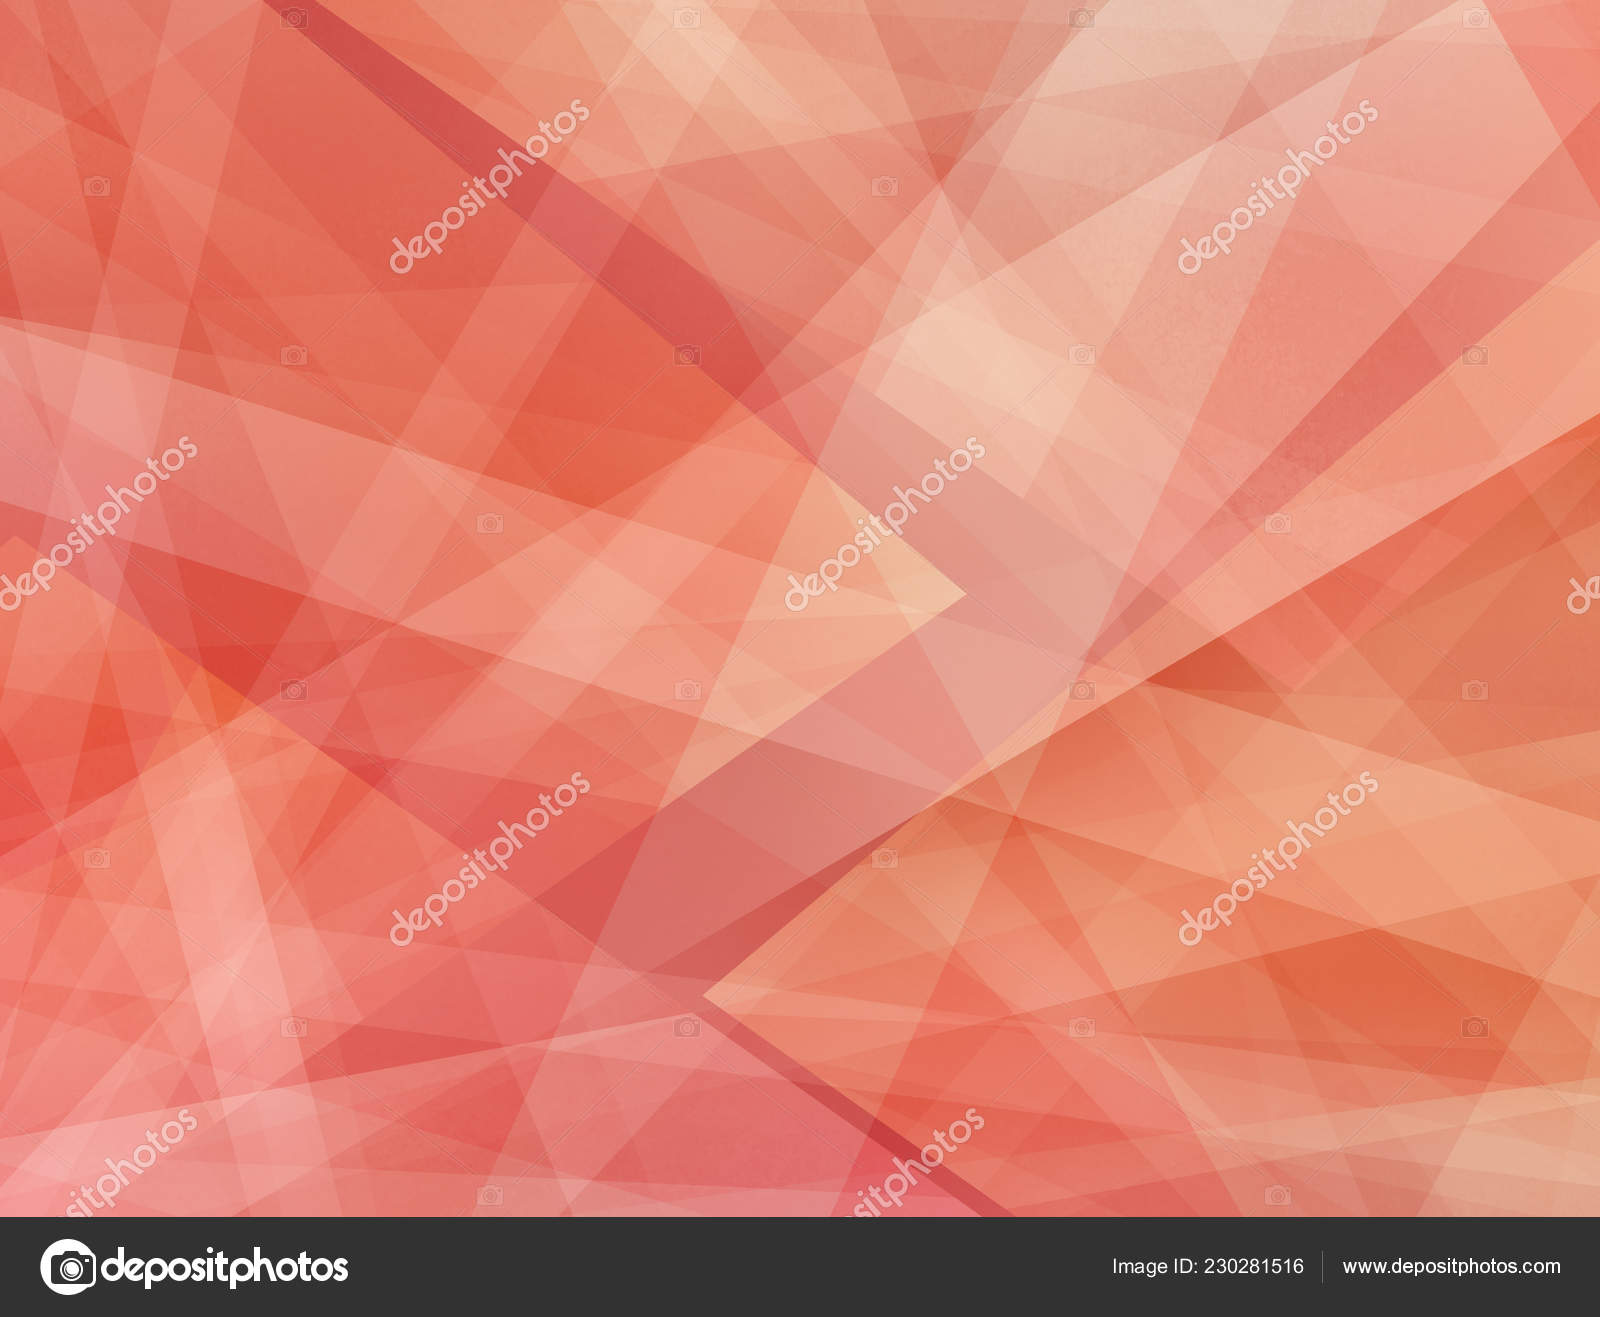 Abstract Red Pink Orange Background Layers White Stripes Triangle